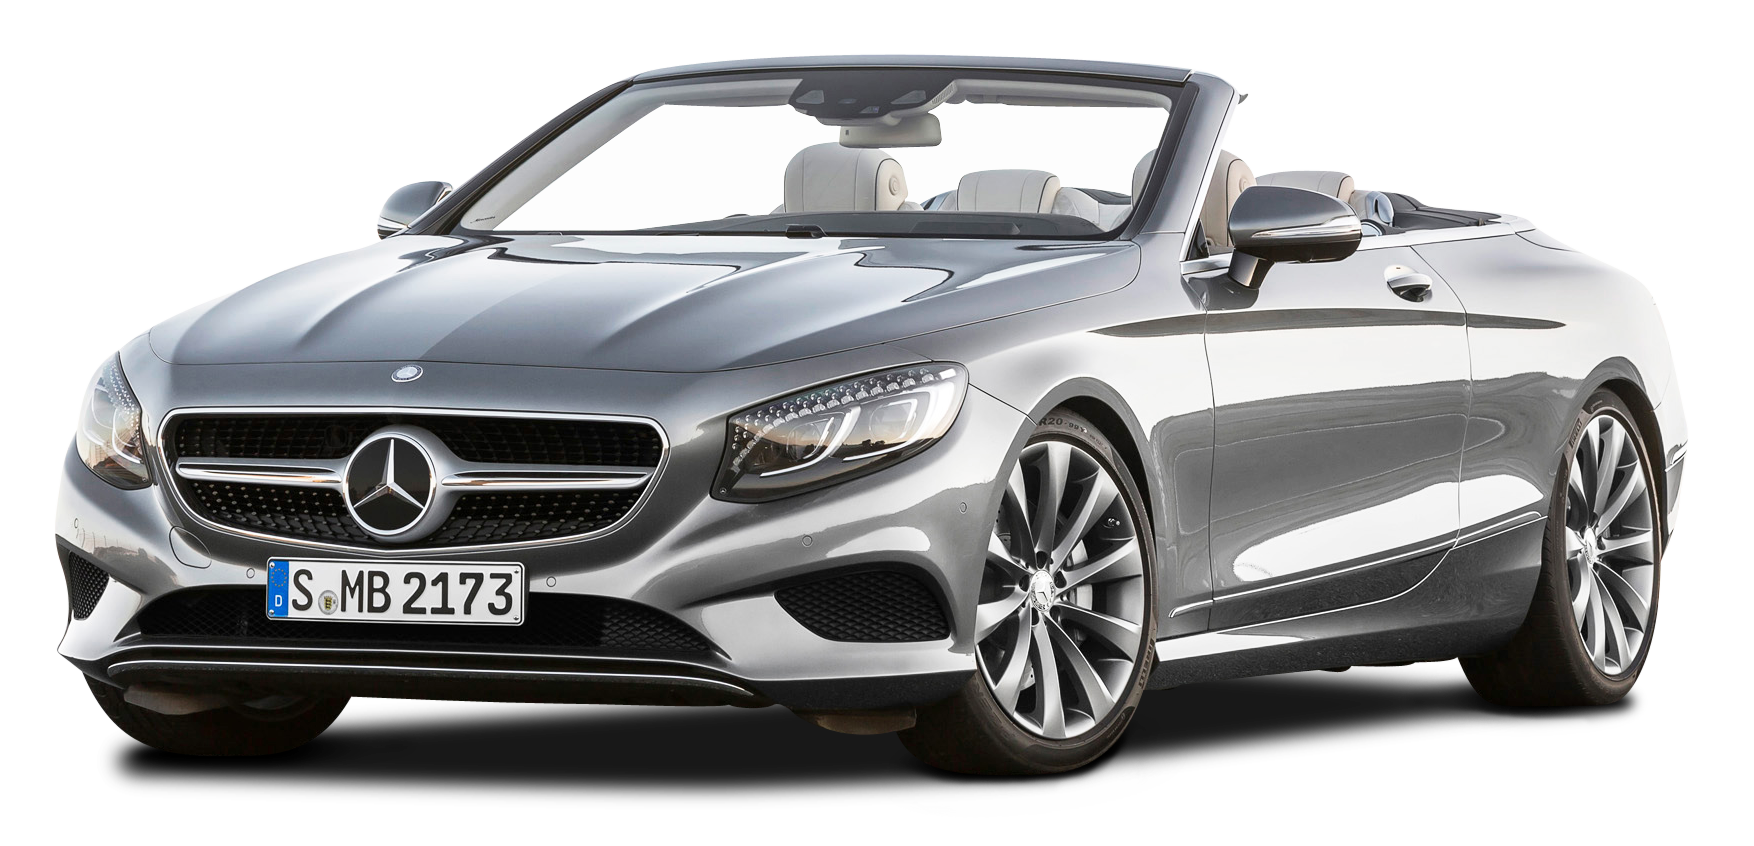 Silver Mercedes Benz S Class Cabriolet Car PNG Image.